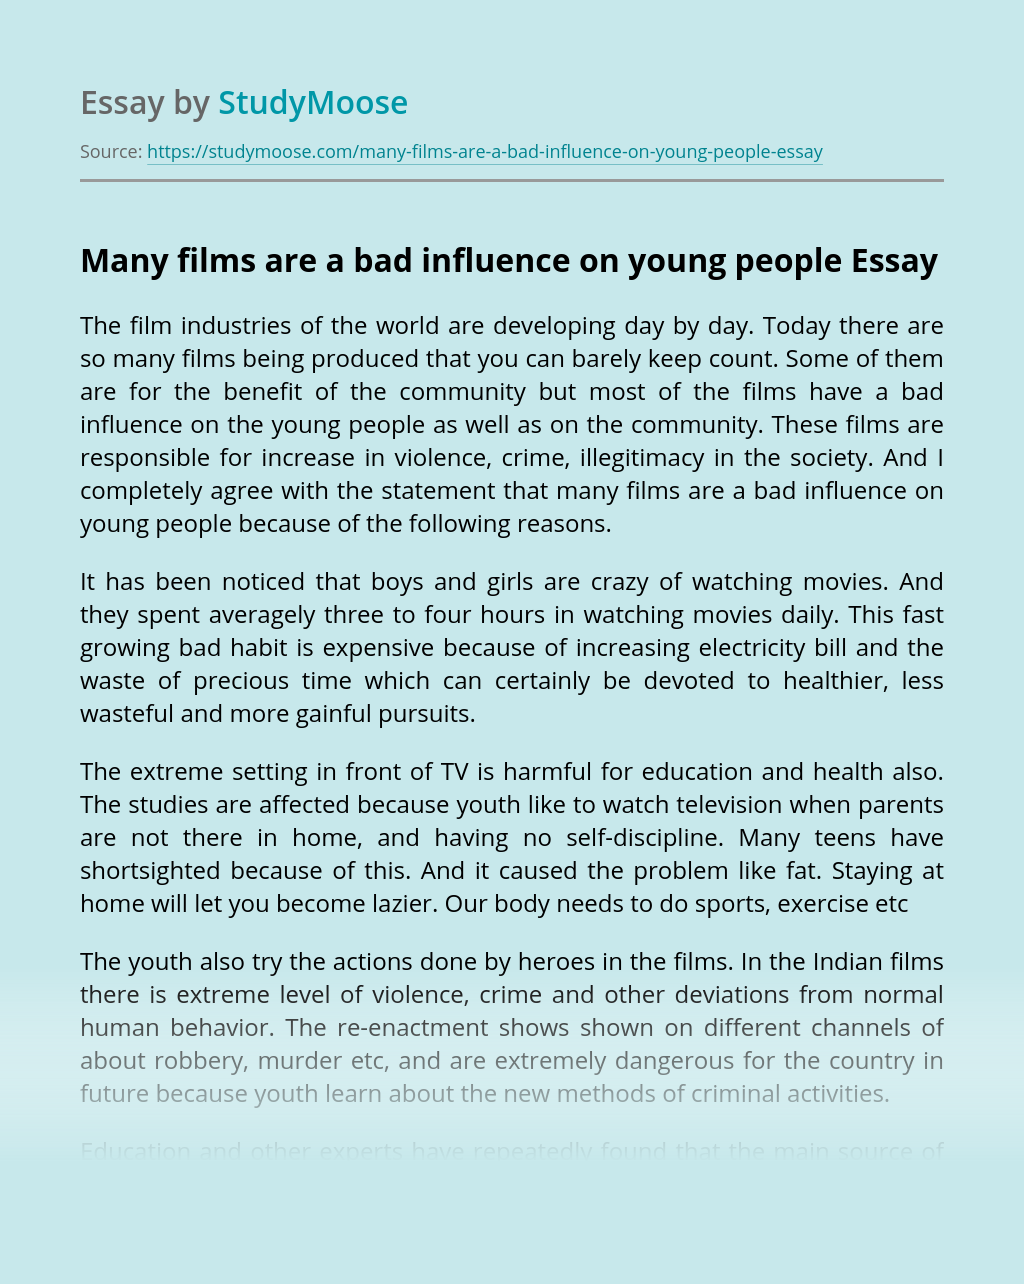 Many films are a bad influence on young people